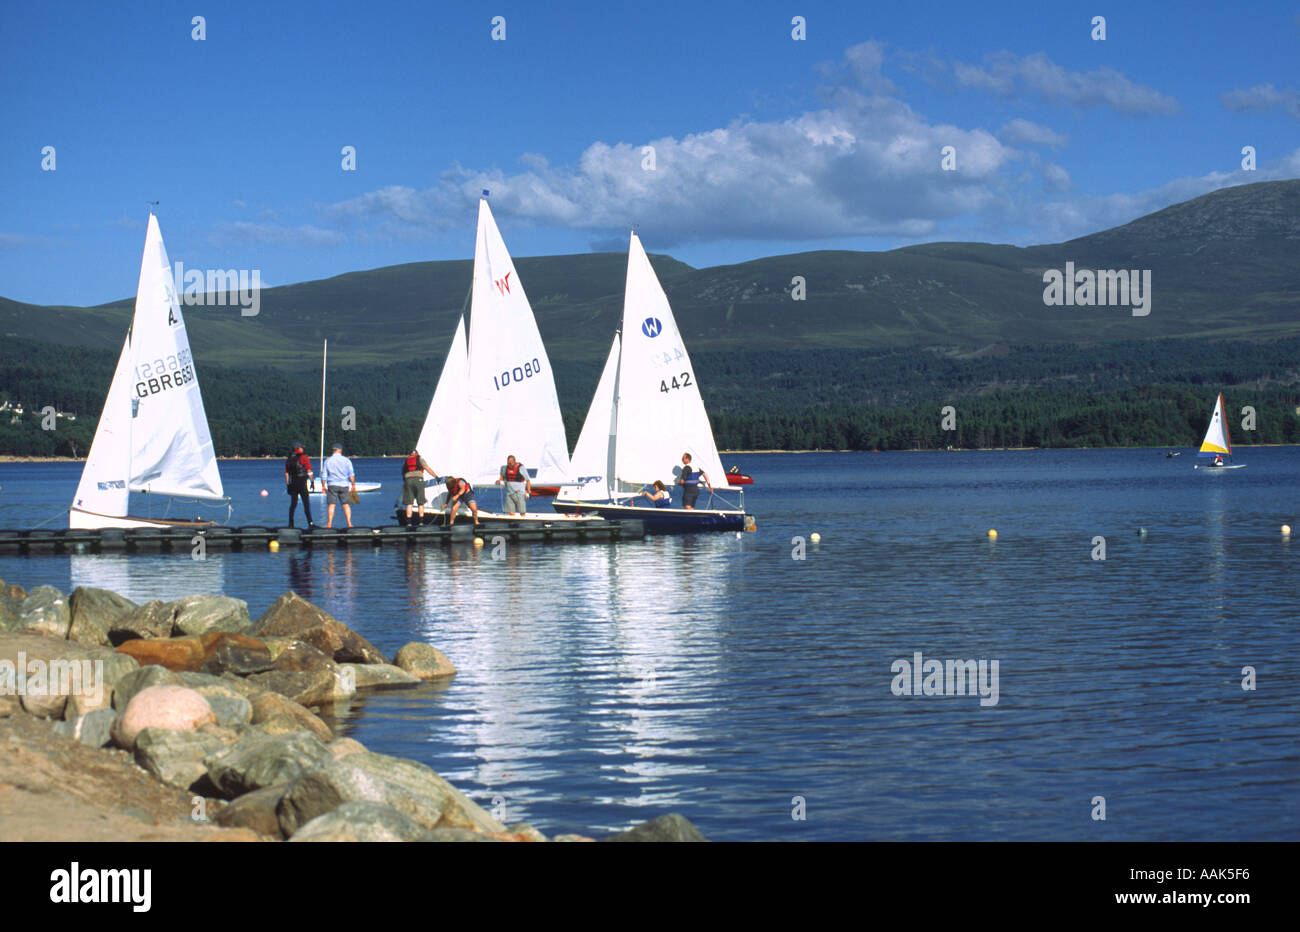 Sailing vessels returning to the mooring on Loch Morlich Cairngorms Scotland - Stock Image